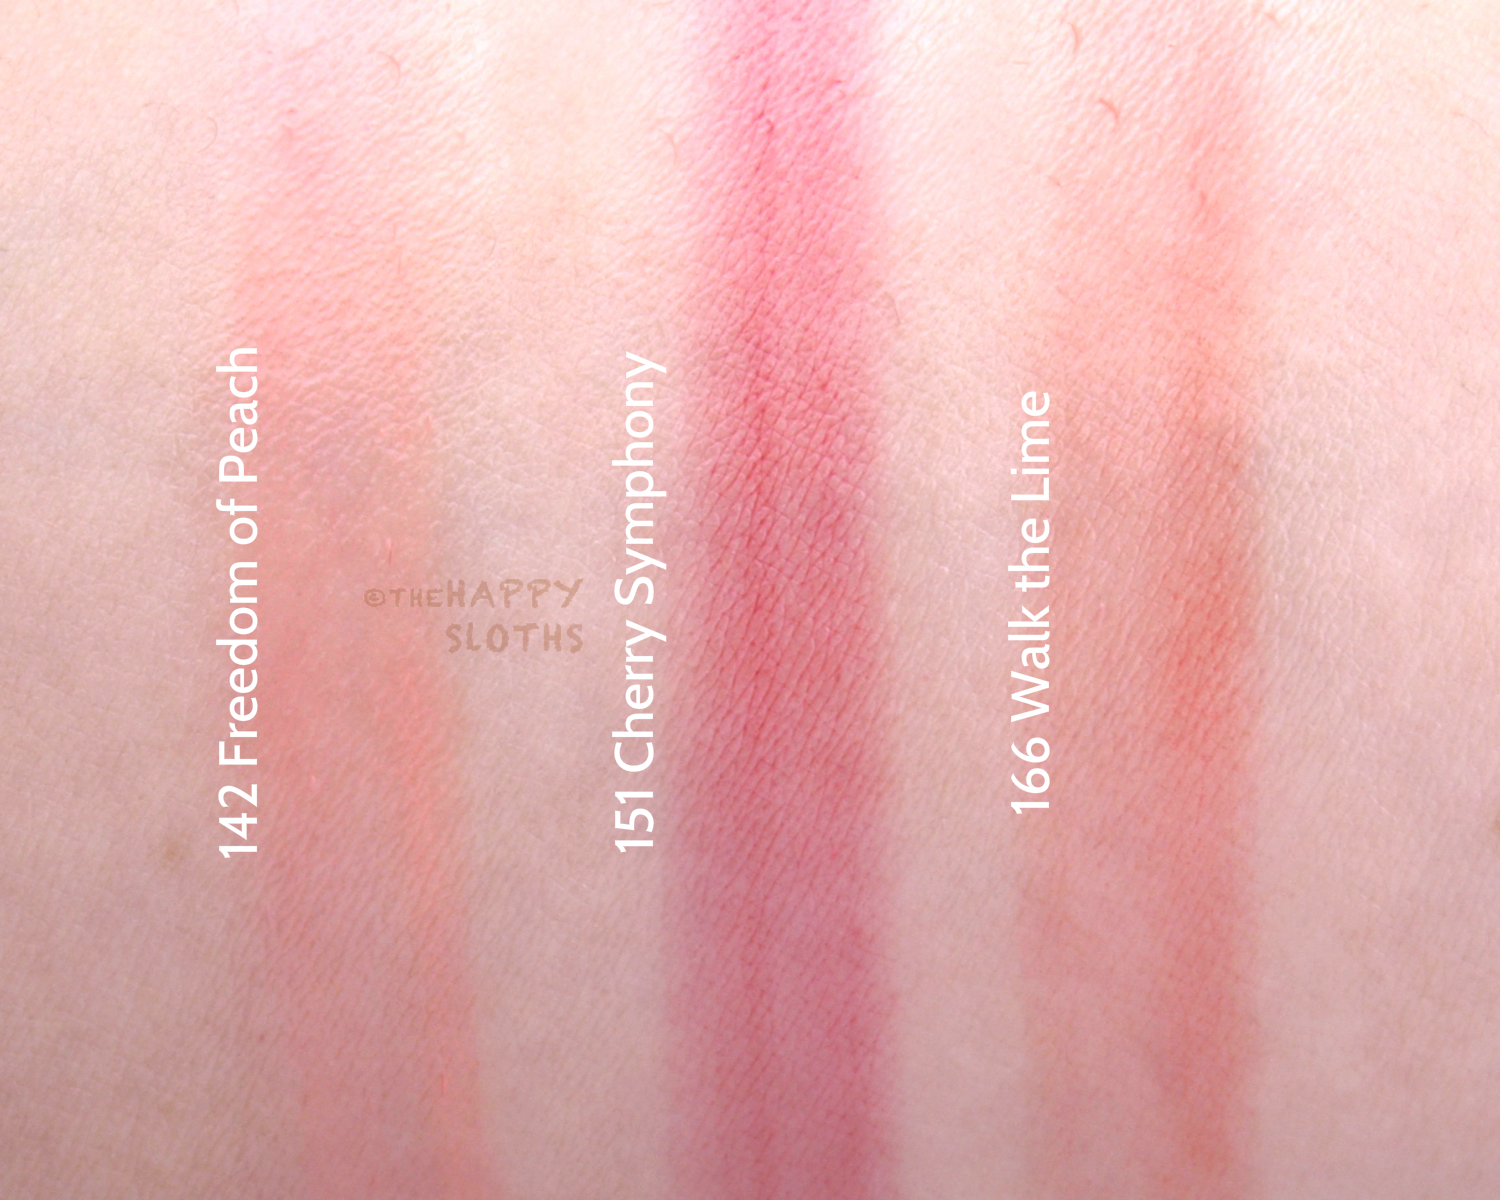 Lancome Juicy Shaker Pigment Infused Bi-Phase Lip Oil: Review and ...